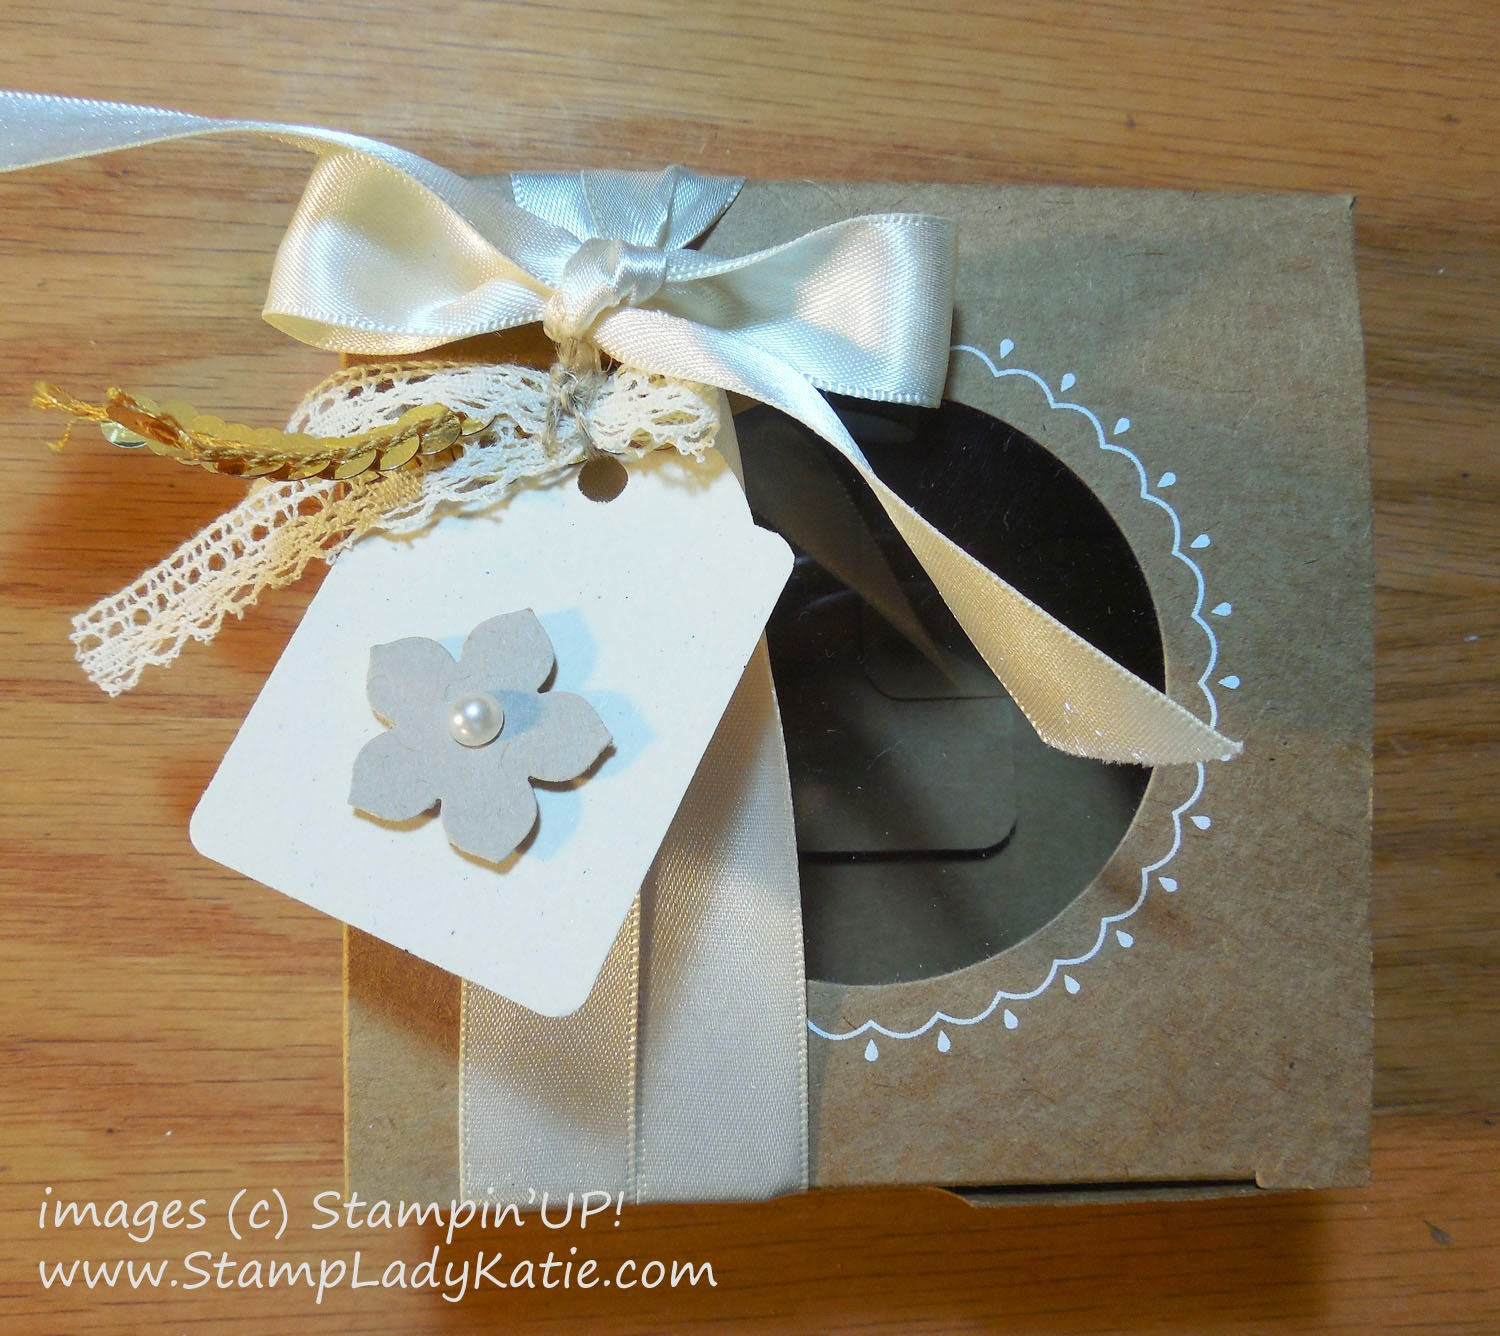 A decorated Gift Box